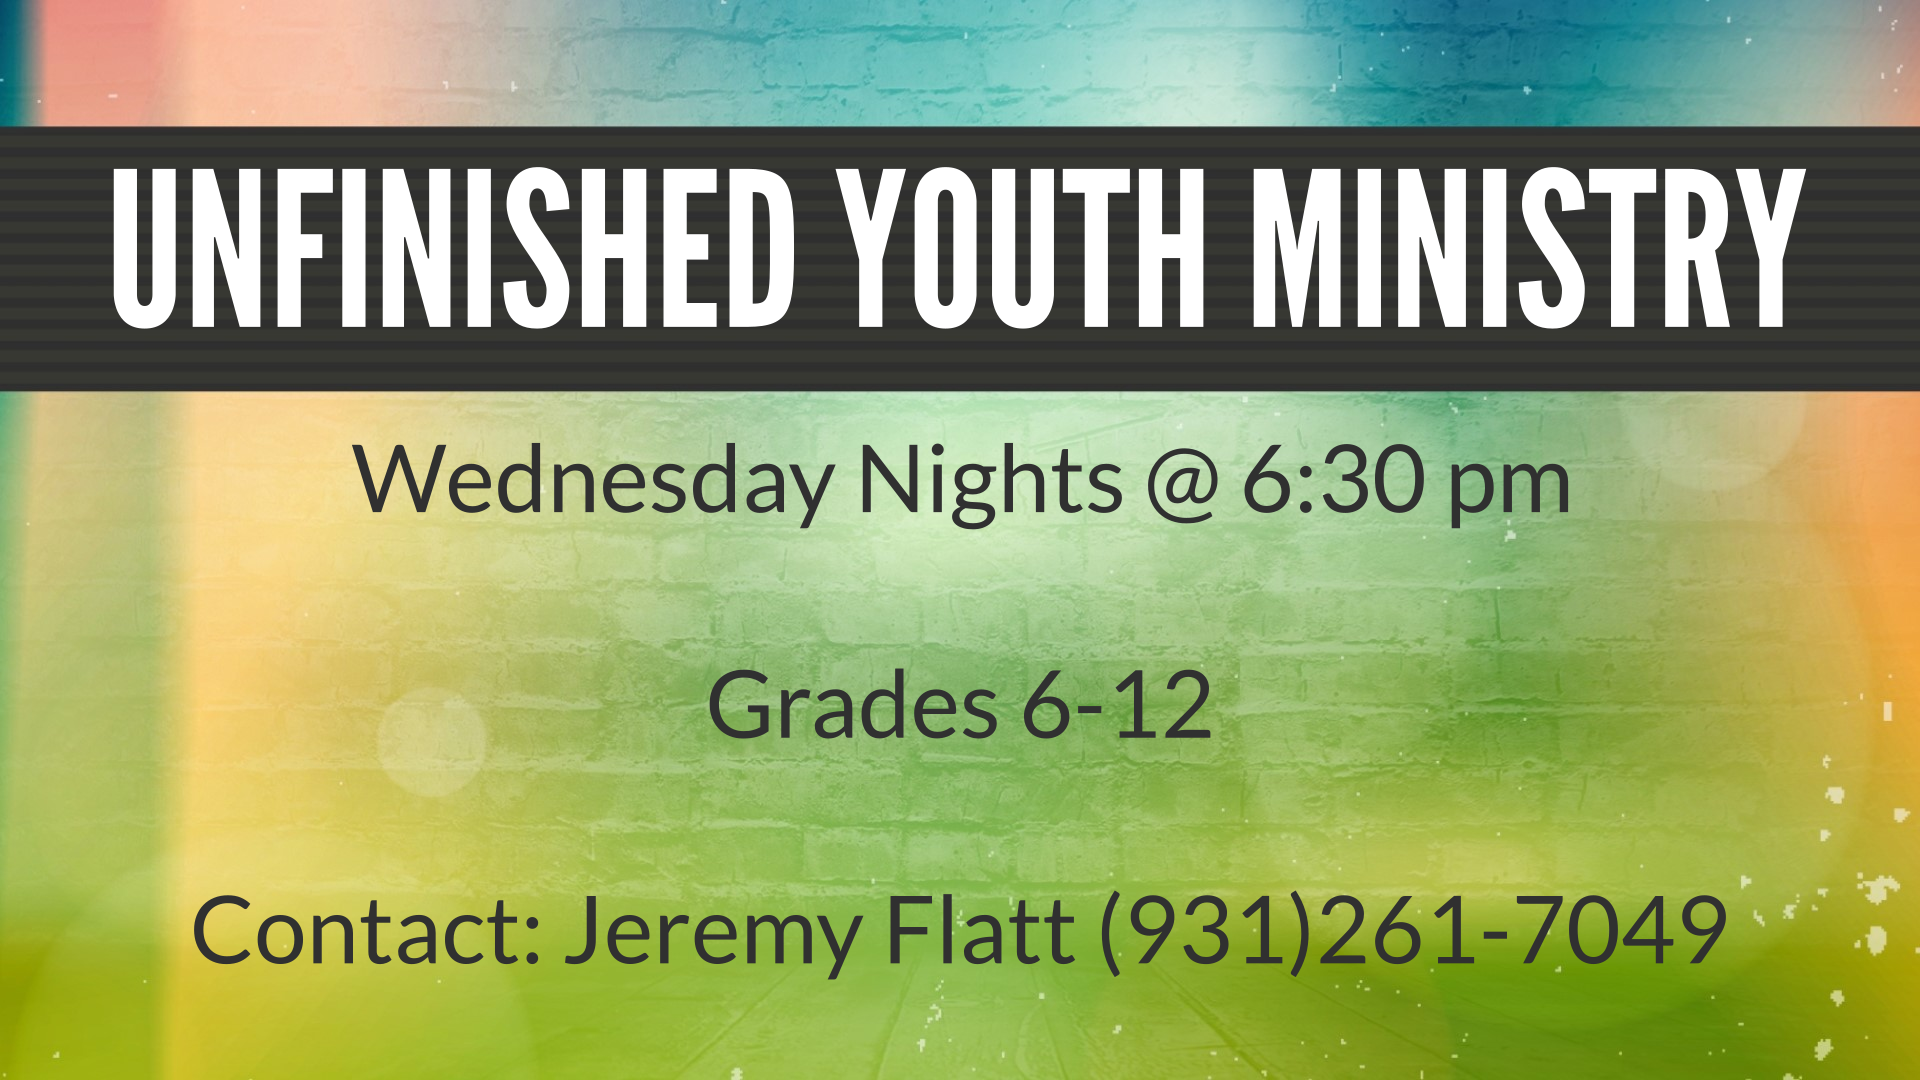 Unfinished Youth Ministry